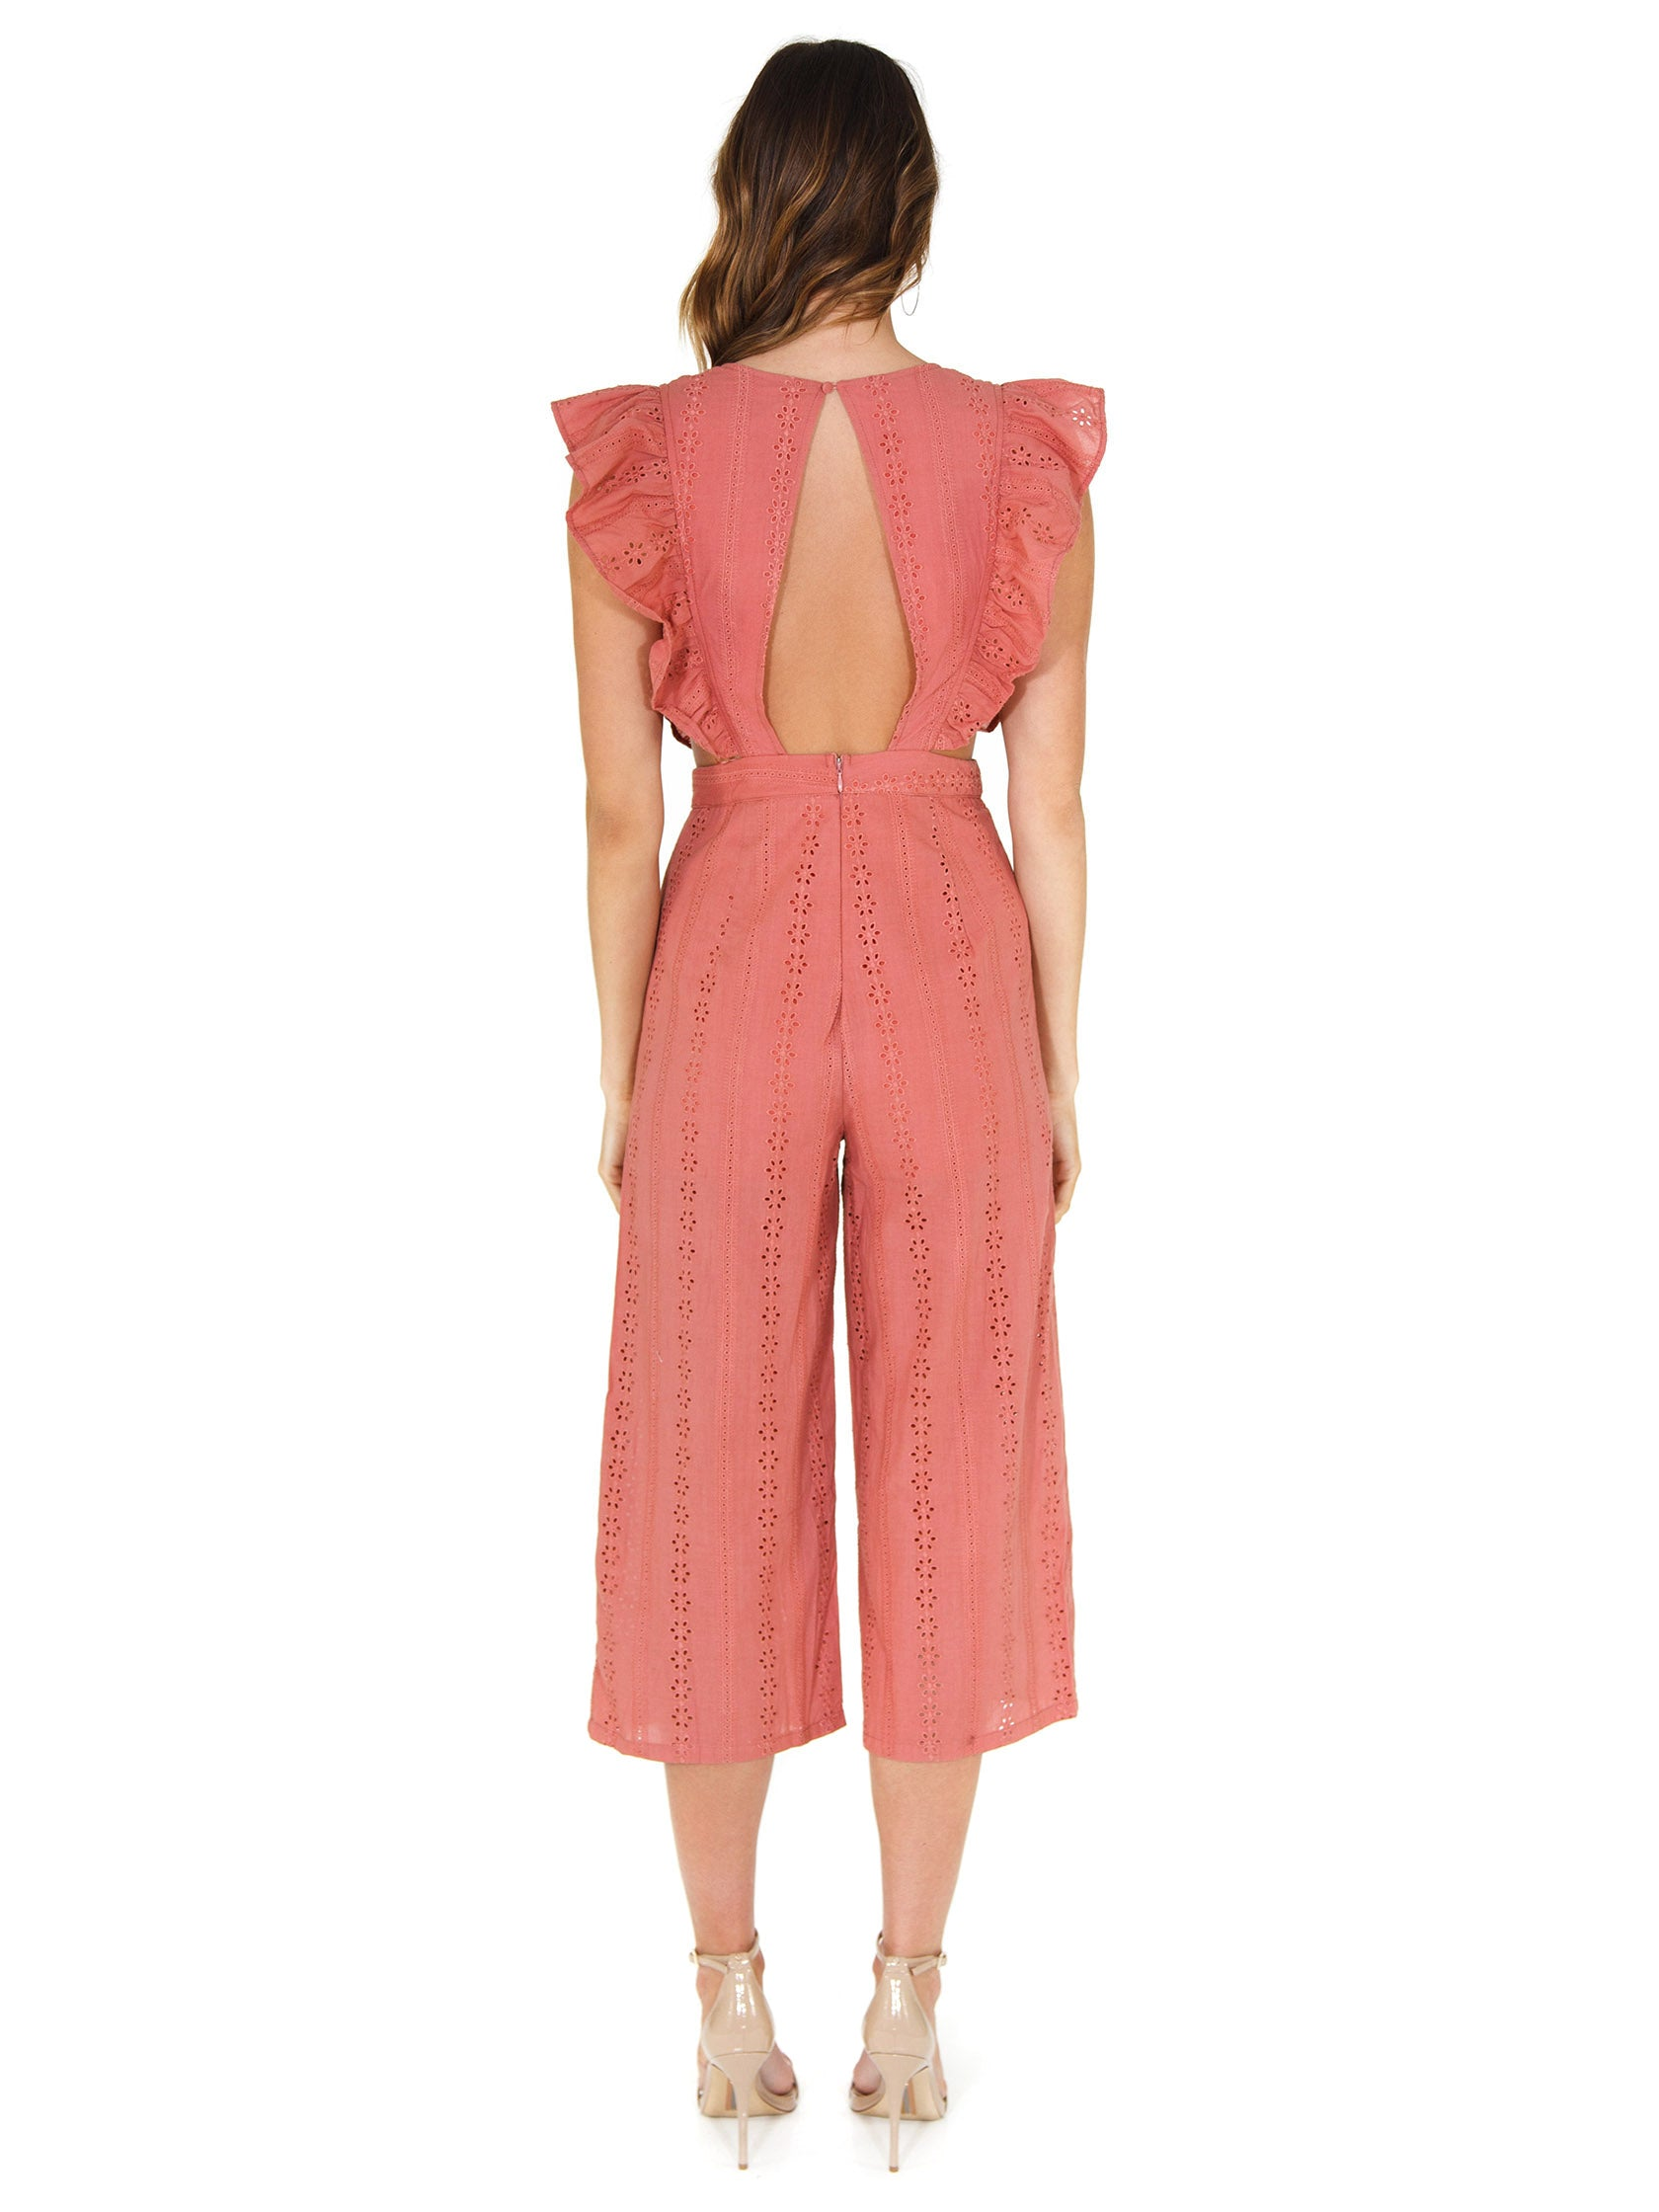 Women wearing a jumpsuit rental from FashionPass called Jessie Jumpsuit